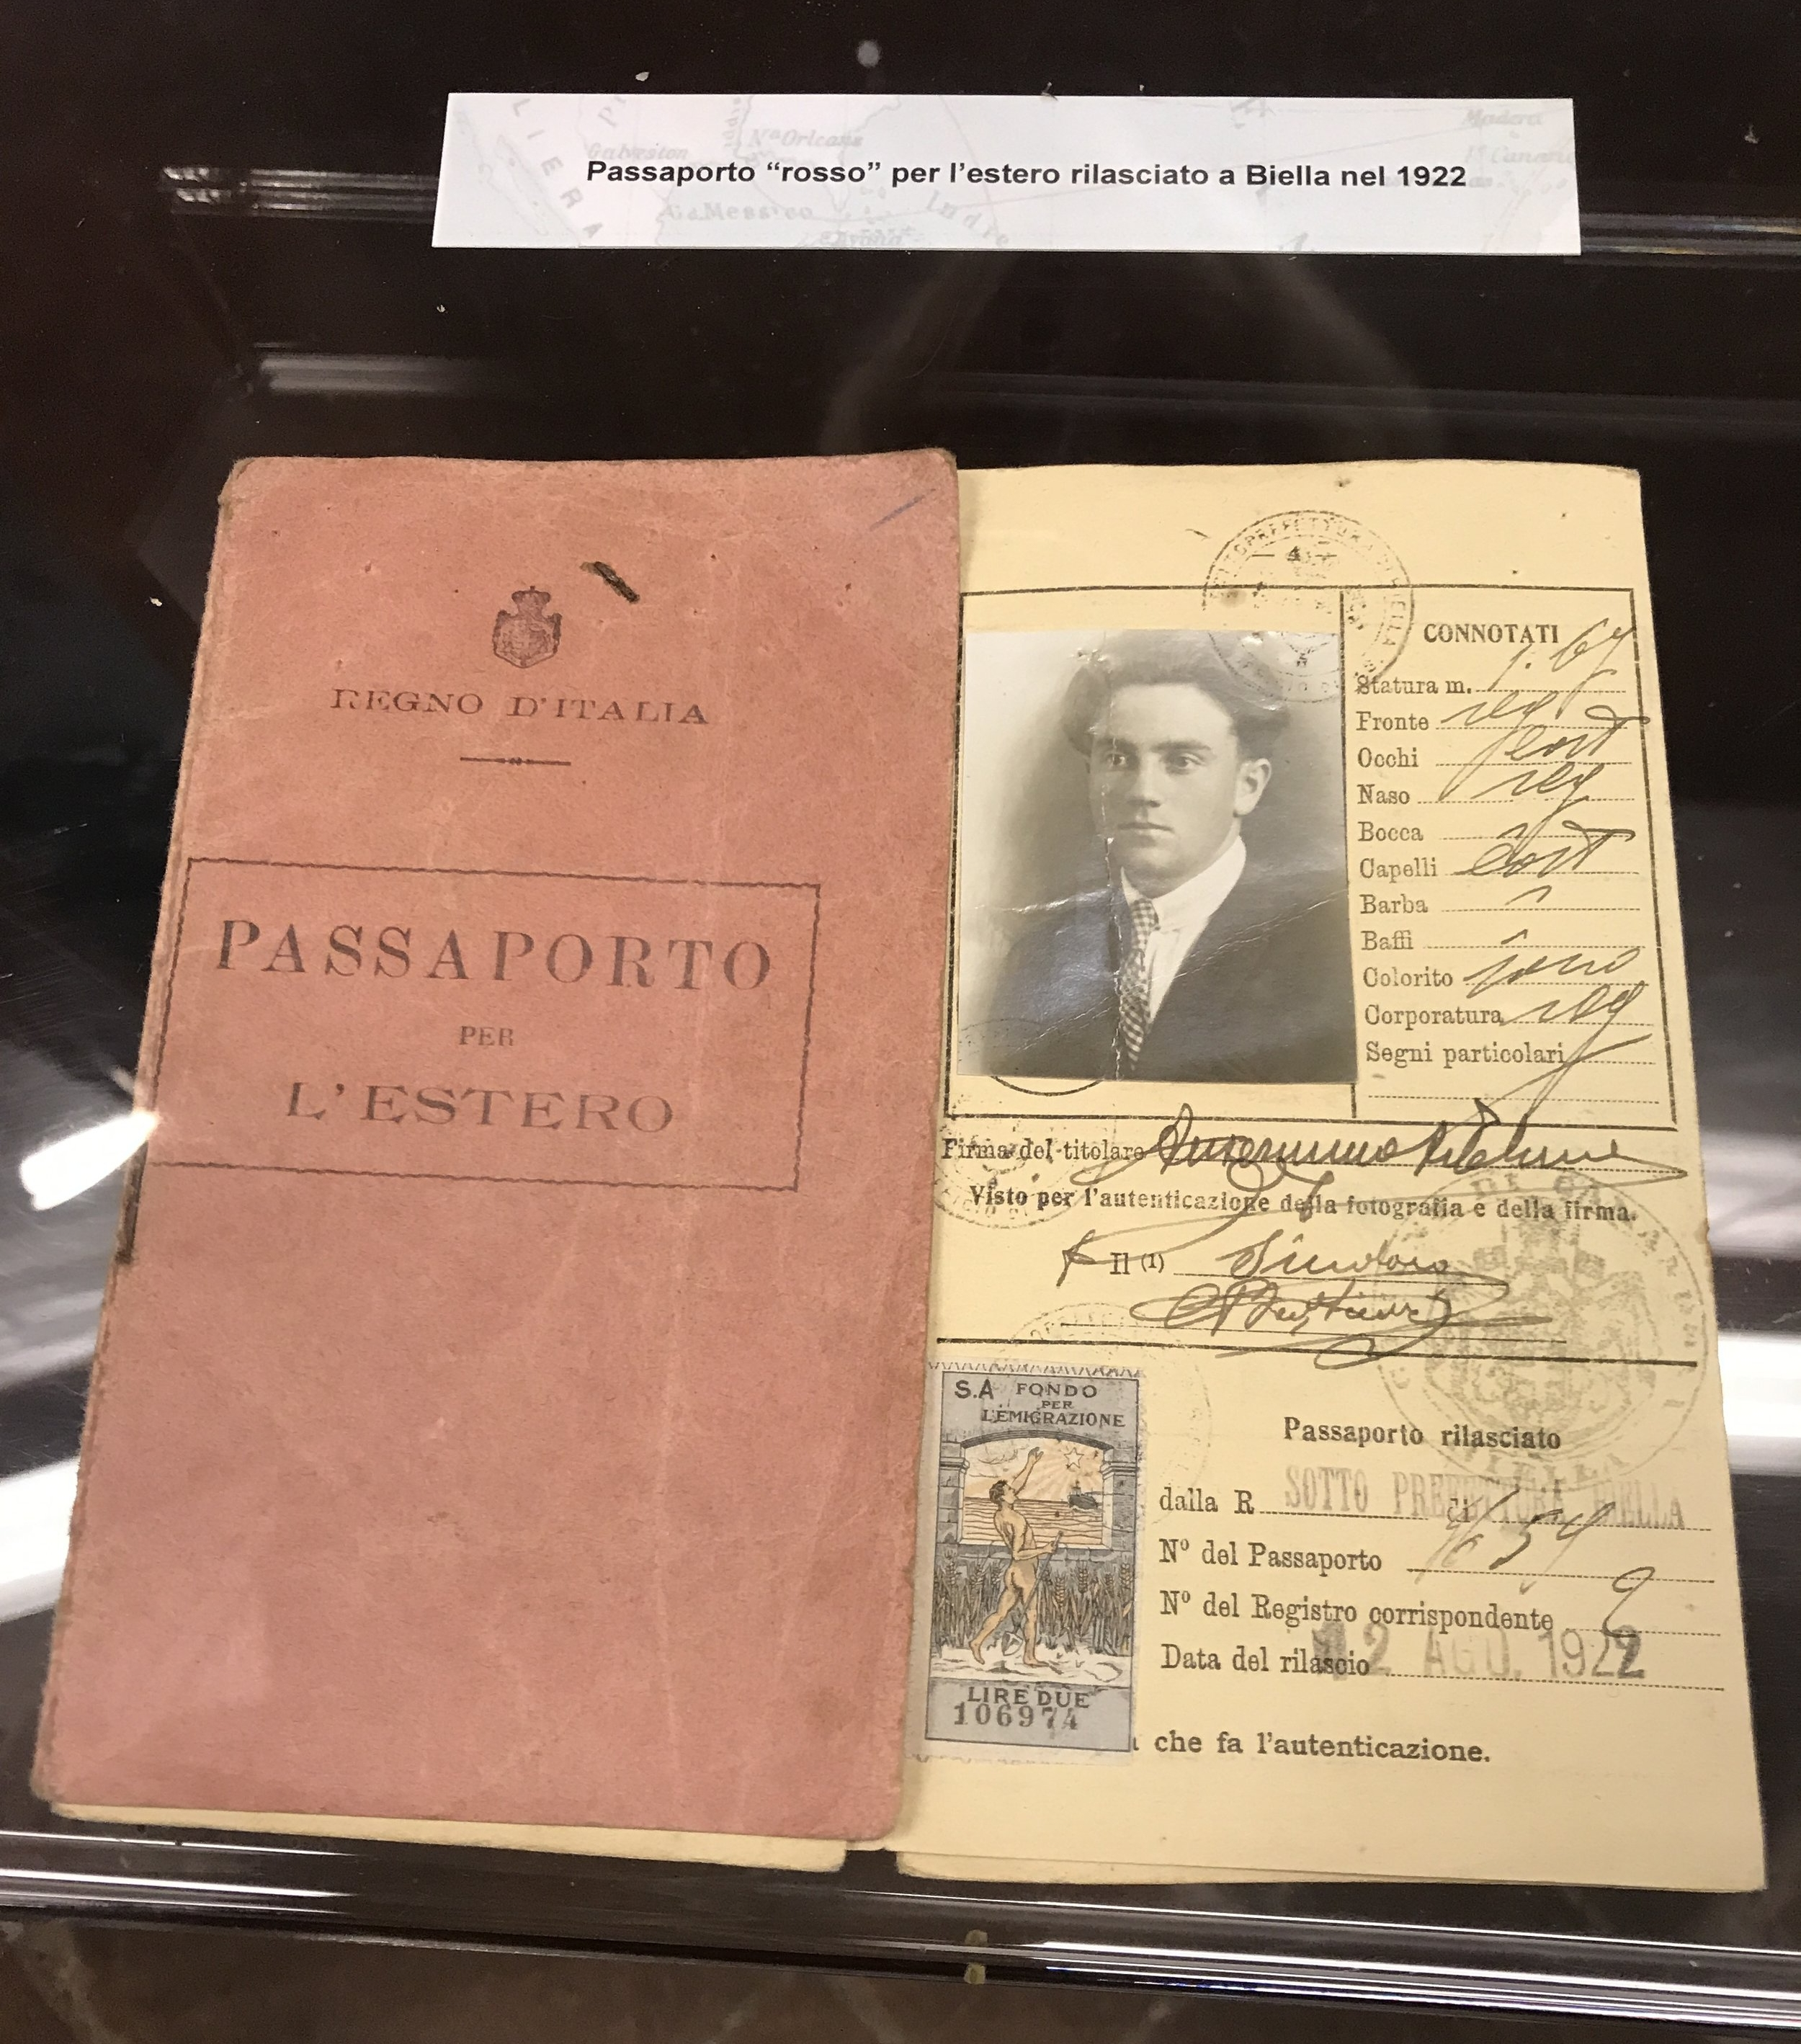 Paolo Cresci collected more than 15,000 photos and documents from the families of Italians who emigrated.